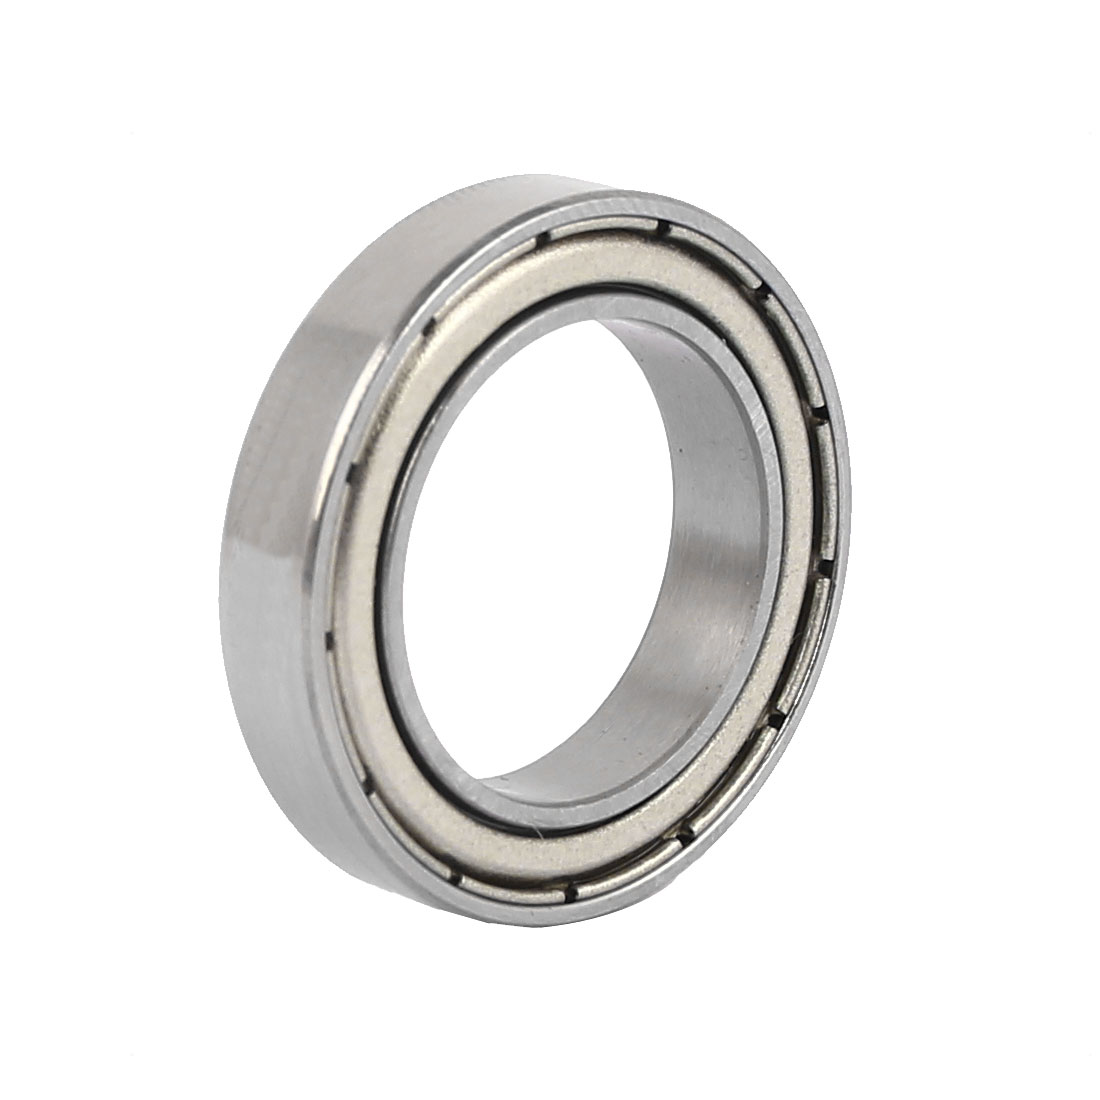 17mm x 26mm x 5mm ZZ6803 Shielded Deep Groove Radial Ball Bearing